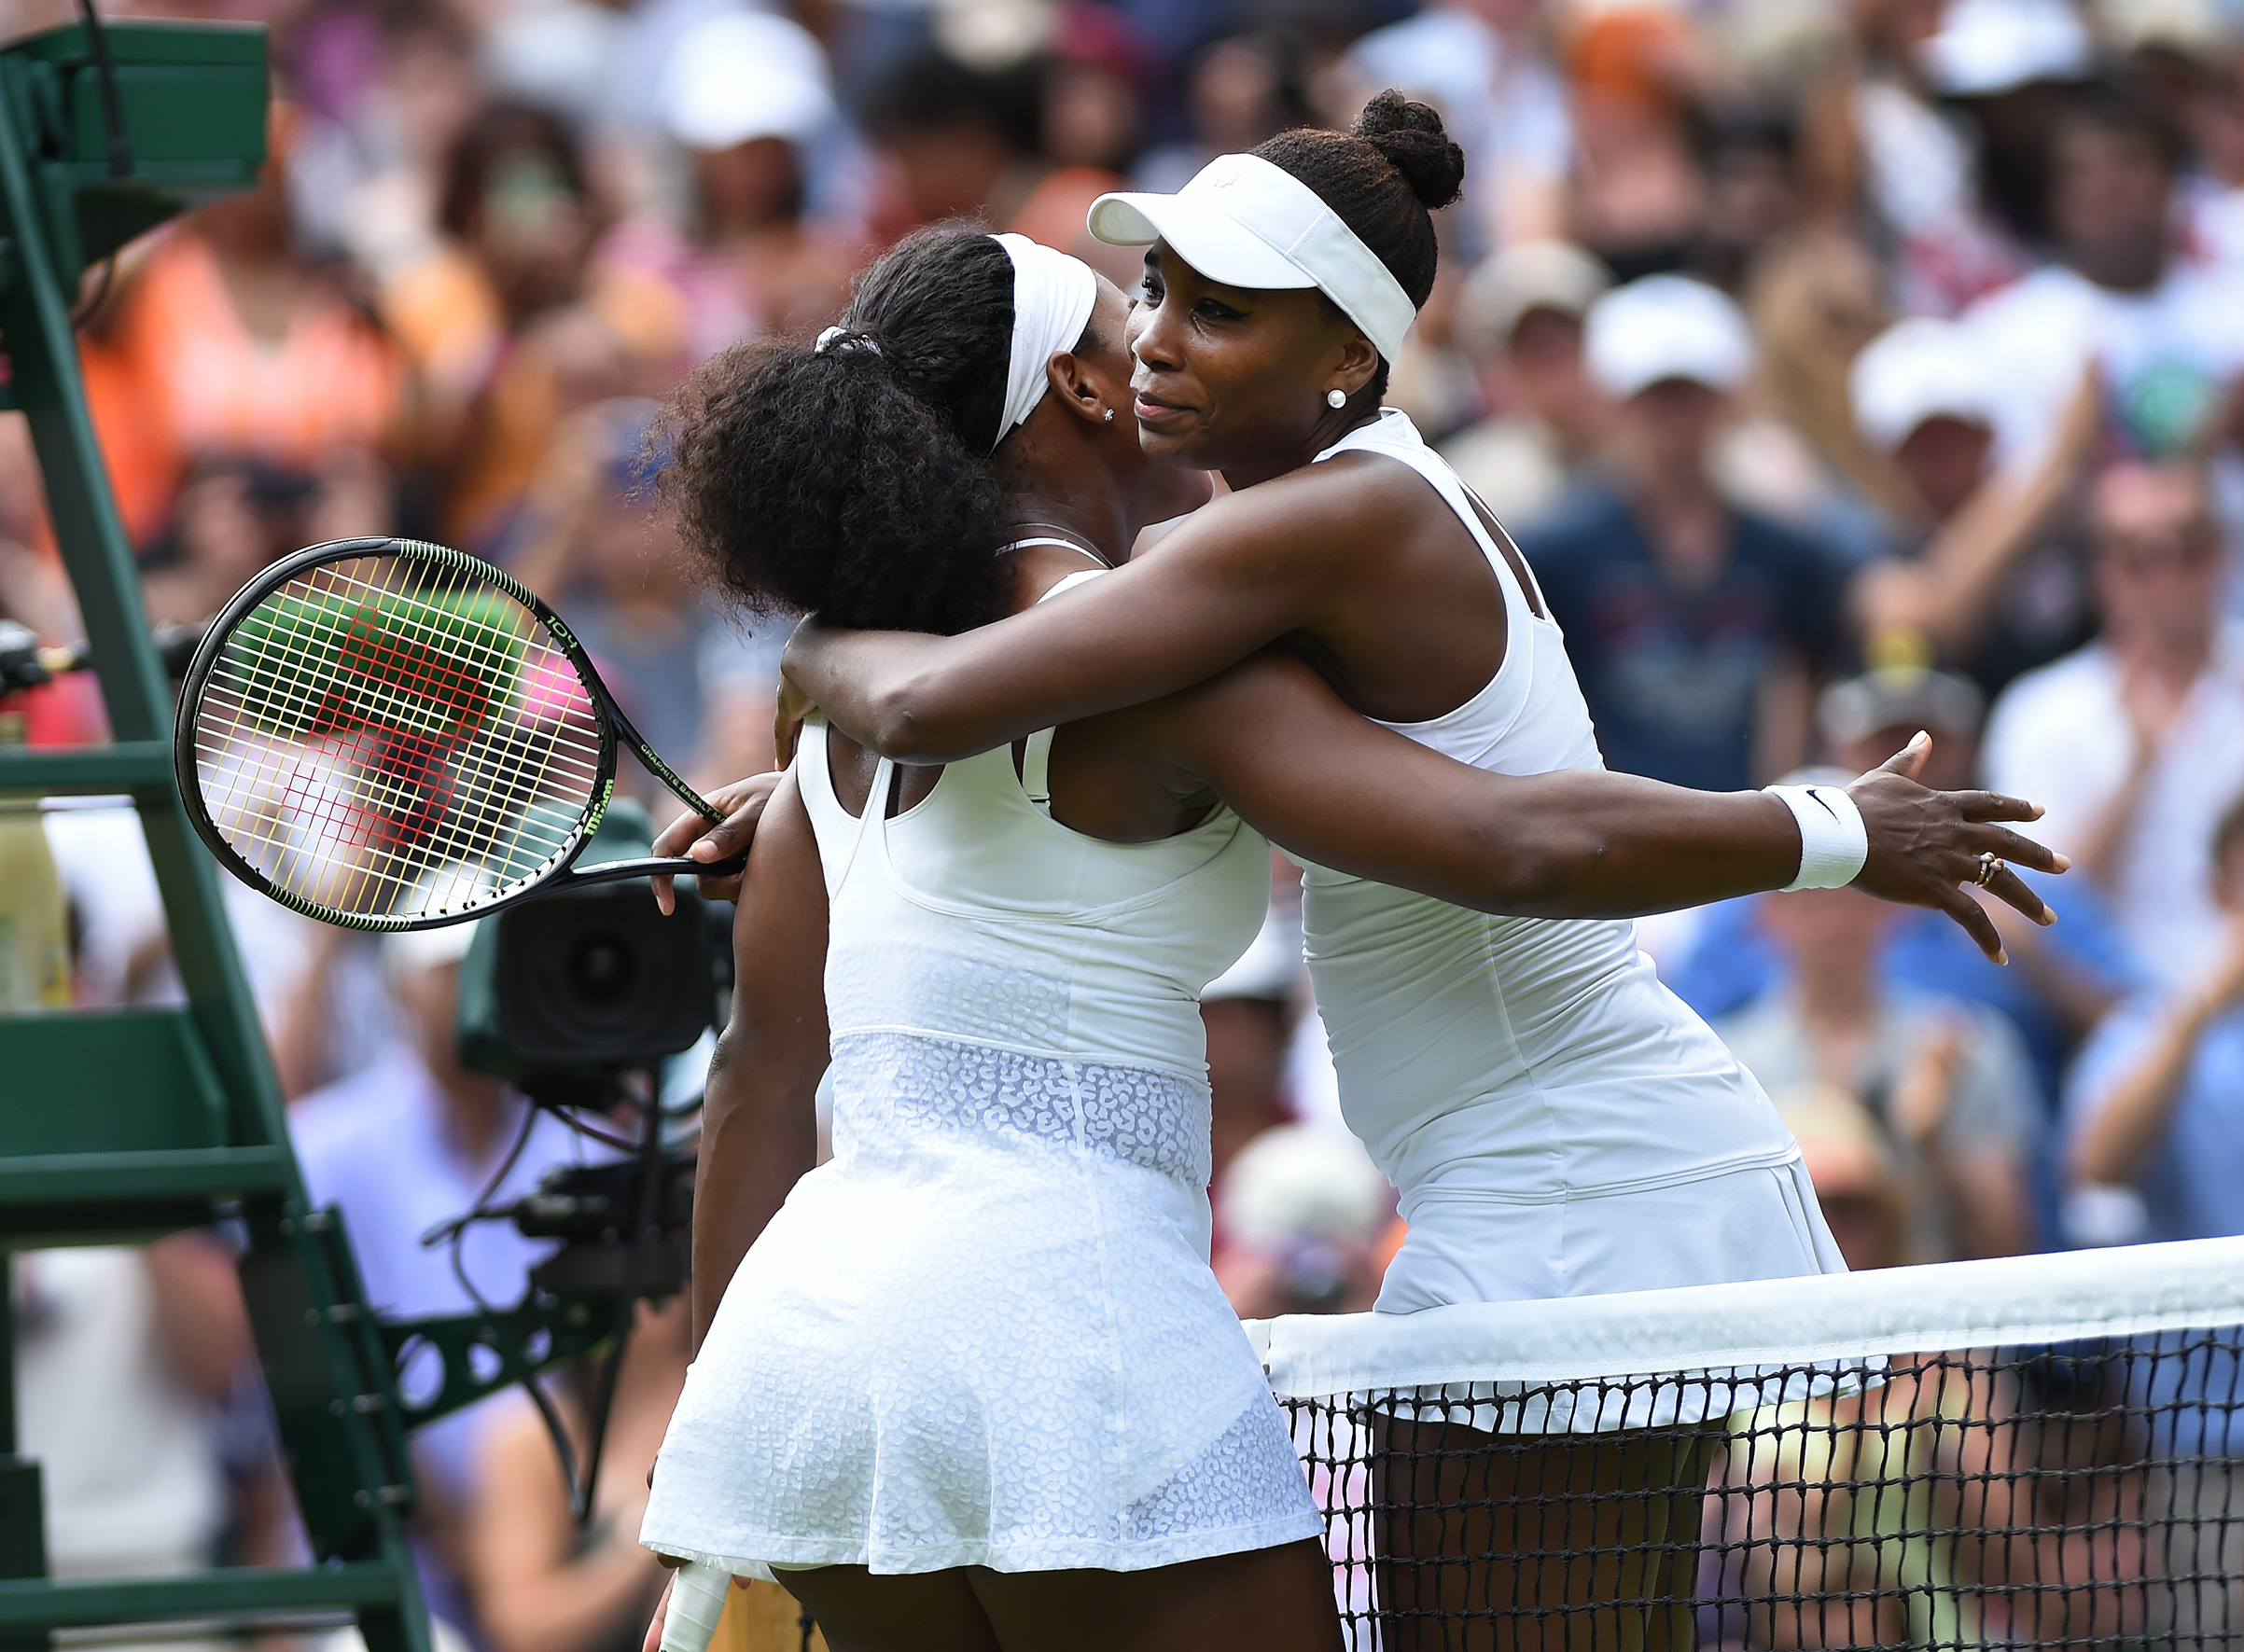 Venus Williams of USA embraces her sister after her fourth round match against Serena Williams of USA on Day Seven of the 2015 Wimbledon Lawn Tennis Championships at the All England Lawn Tennis and Croquet Club in London, UK.